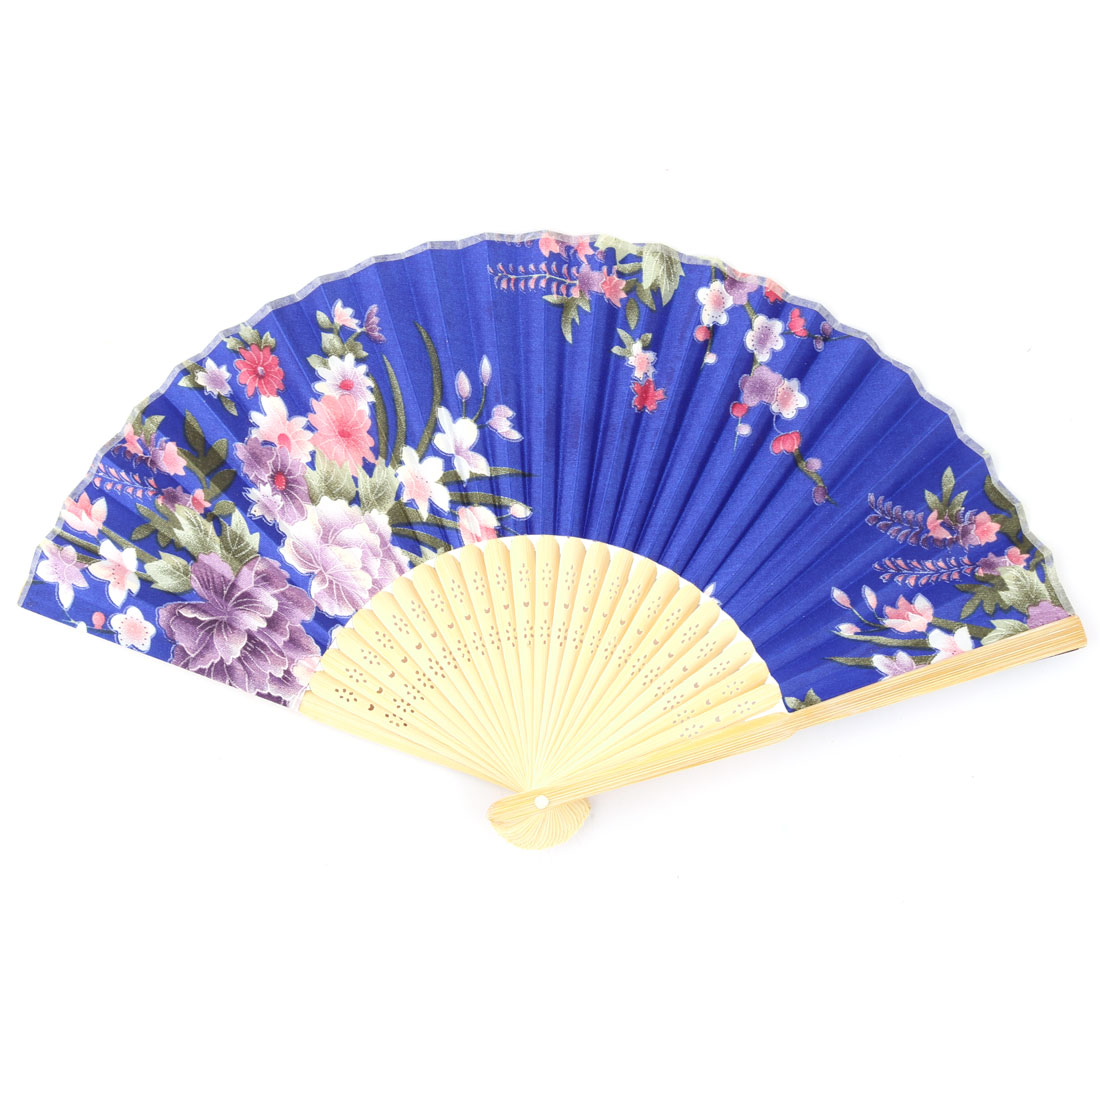 Dormitory Bamboo Frame Flower Print Chinese Style Artistic Folding Hand Fan Royal Blue Beige